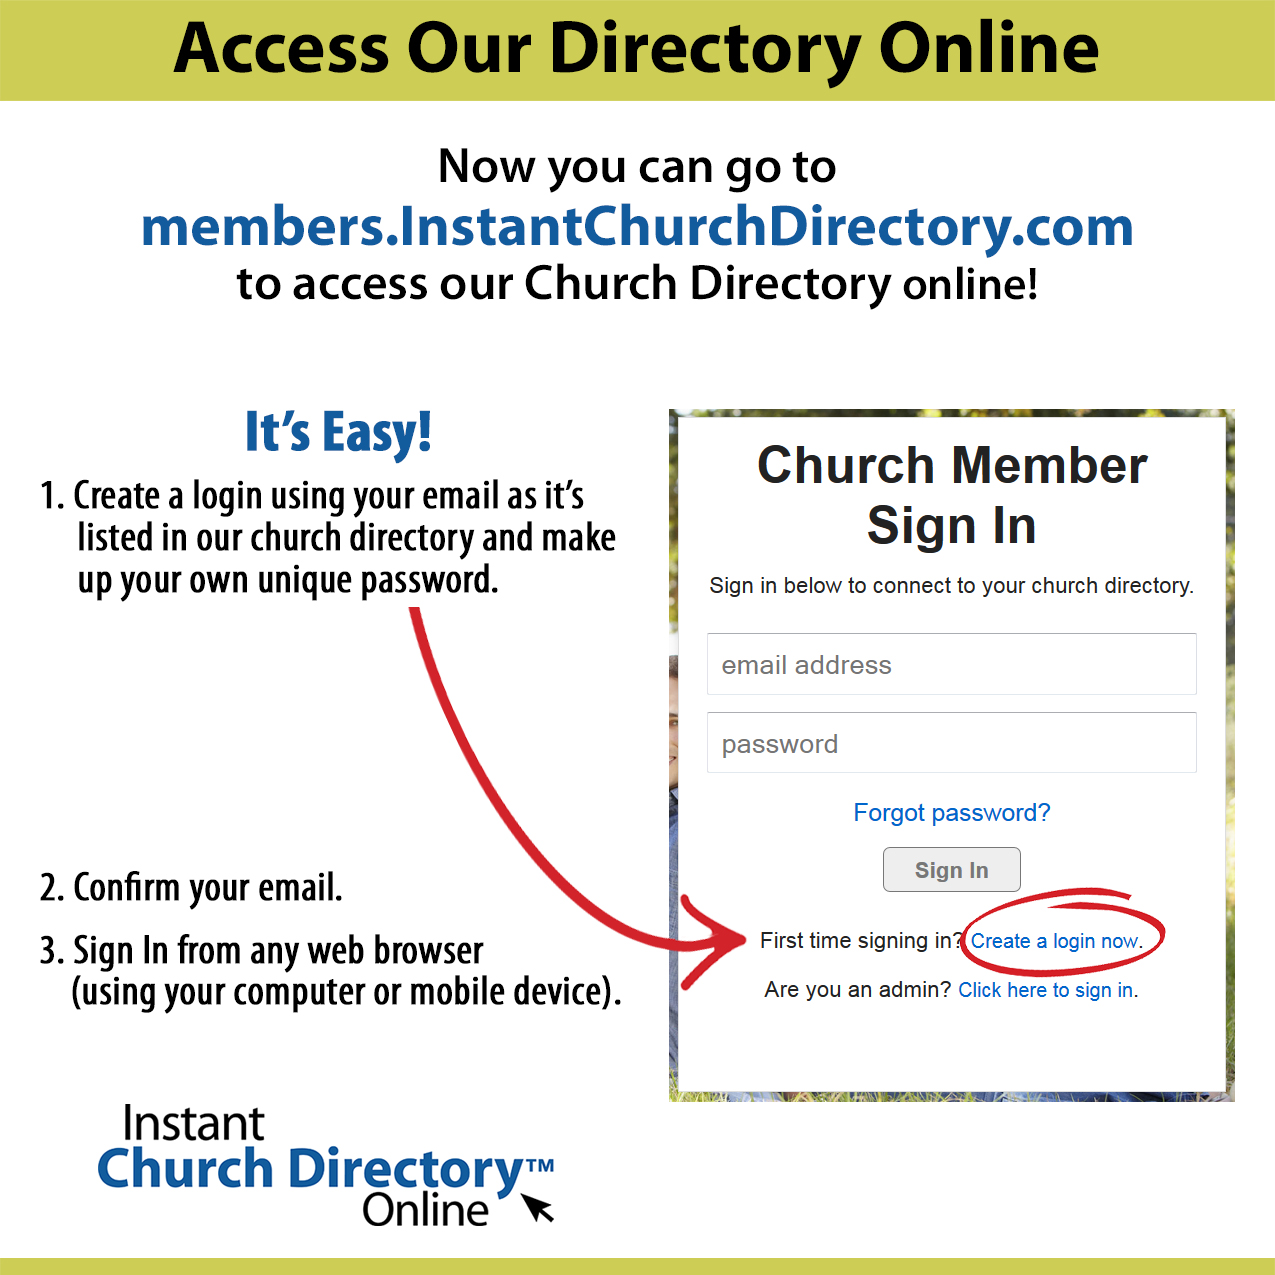 Member_Directory_Ad_for_NL_4.25x4.25_color.jpg